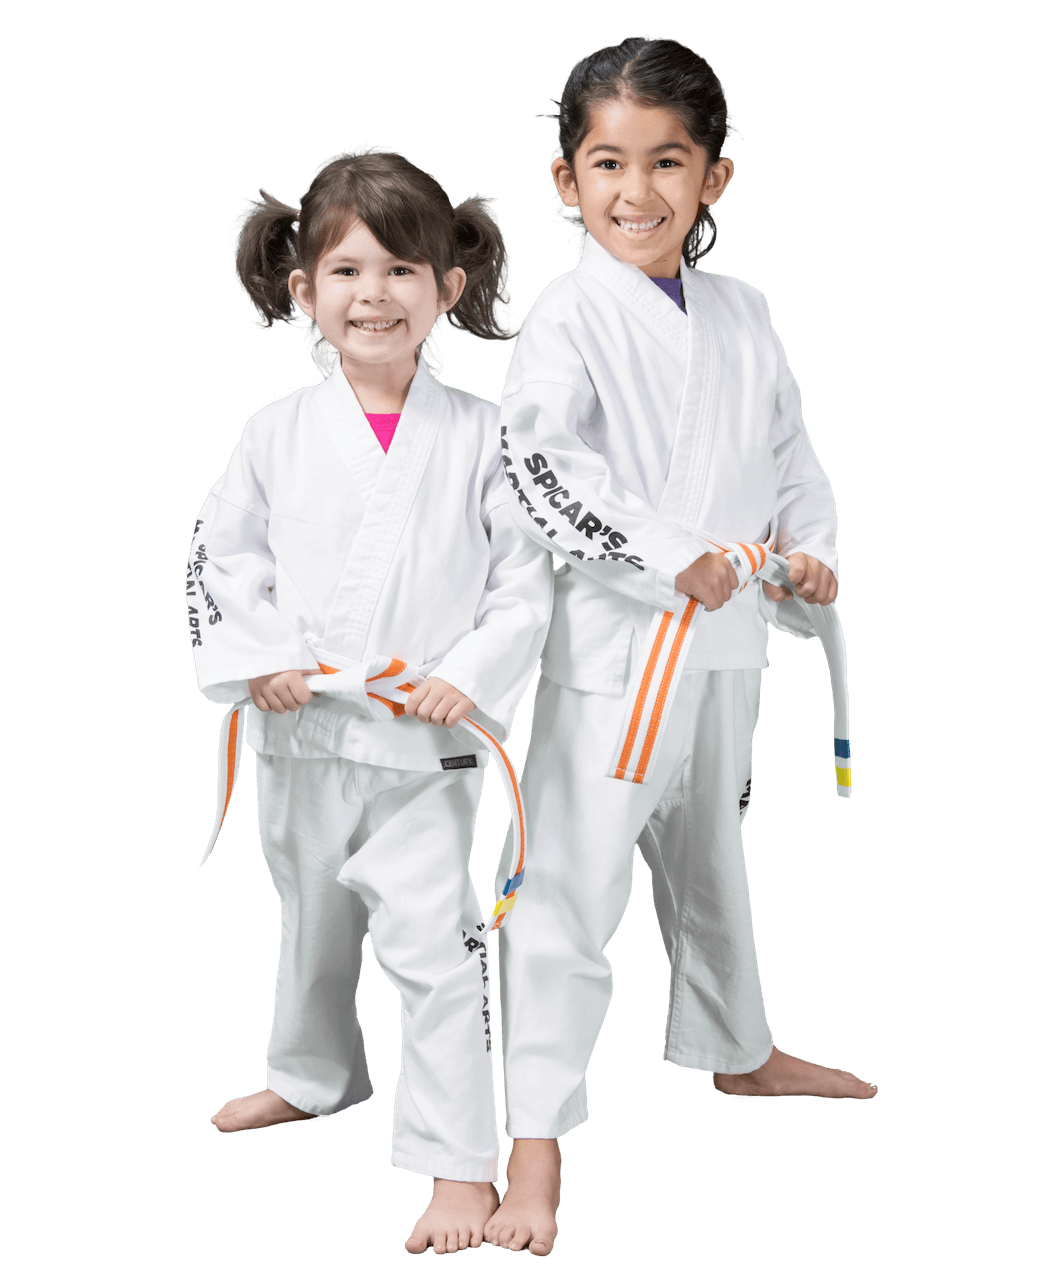 NINJAS (age 4-5) - Millions of children are participating in martial arts worldwide. Parents as well as child development specialists recognize its amazing physical and mental benefits.There is much more behind all the kicking and punching fun. For example, when a child walks up and down the floor when kicking a target and counting aloud, they are increasing their learning ability beyond the normal expectations of his or her stage of development.Our martial arts program will help your child develop:✔︎ Physically✔︎ Intellectually✔︎ Emotionally✔︎ Socially✔︎ And have tons of FUN 😃😃As a parent, who wouldn't want to increase their child's growth in all 5 areas?See below how we can help reach your child's next stage of development and set them on a path of lifelong success.